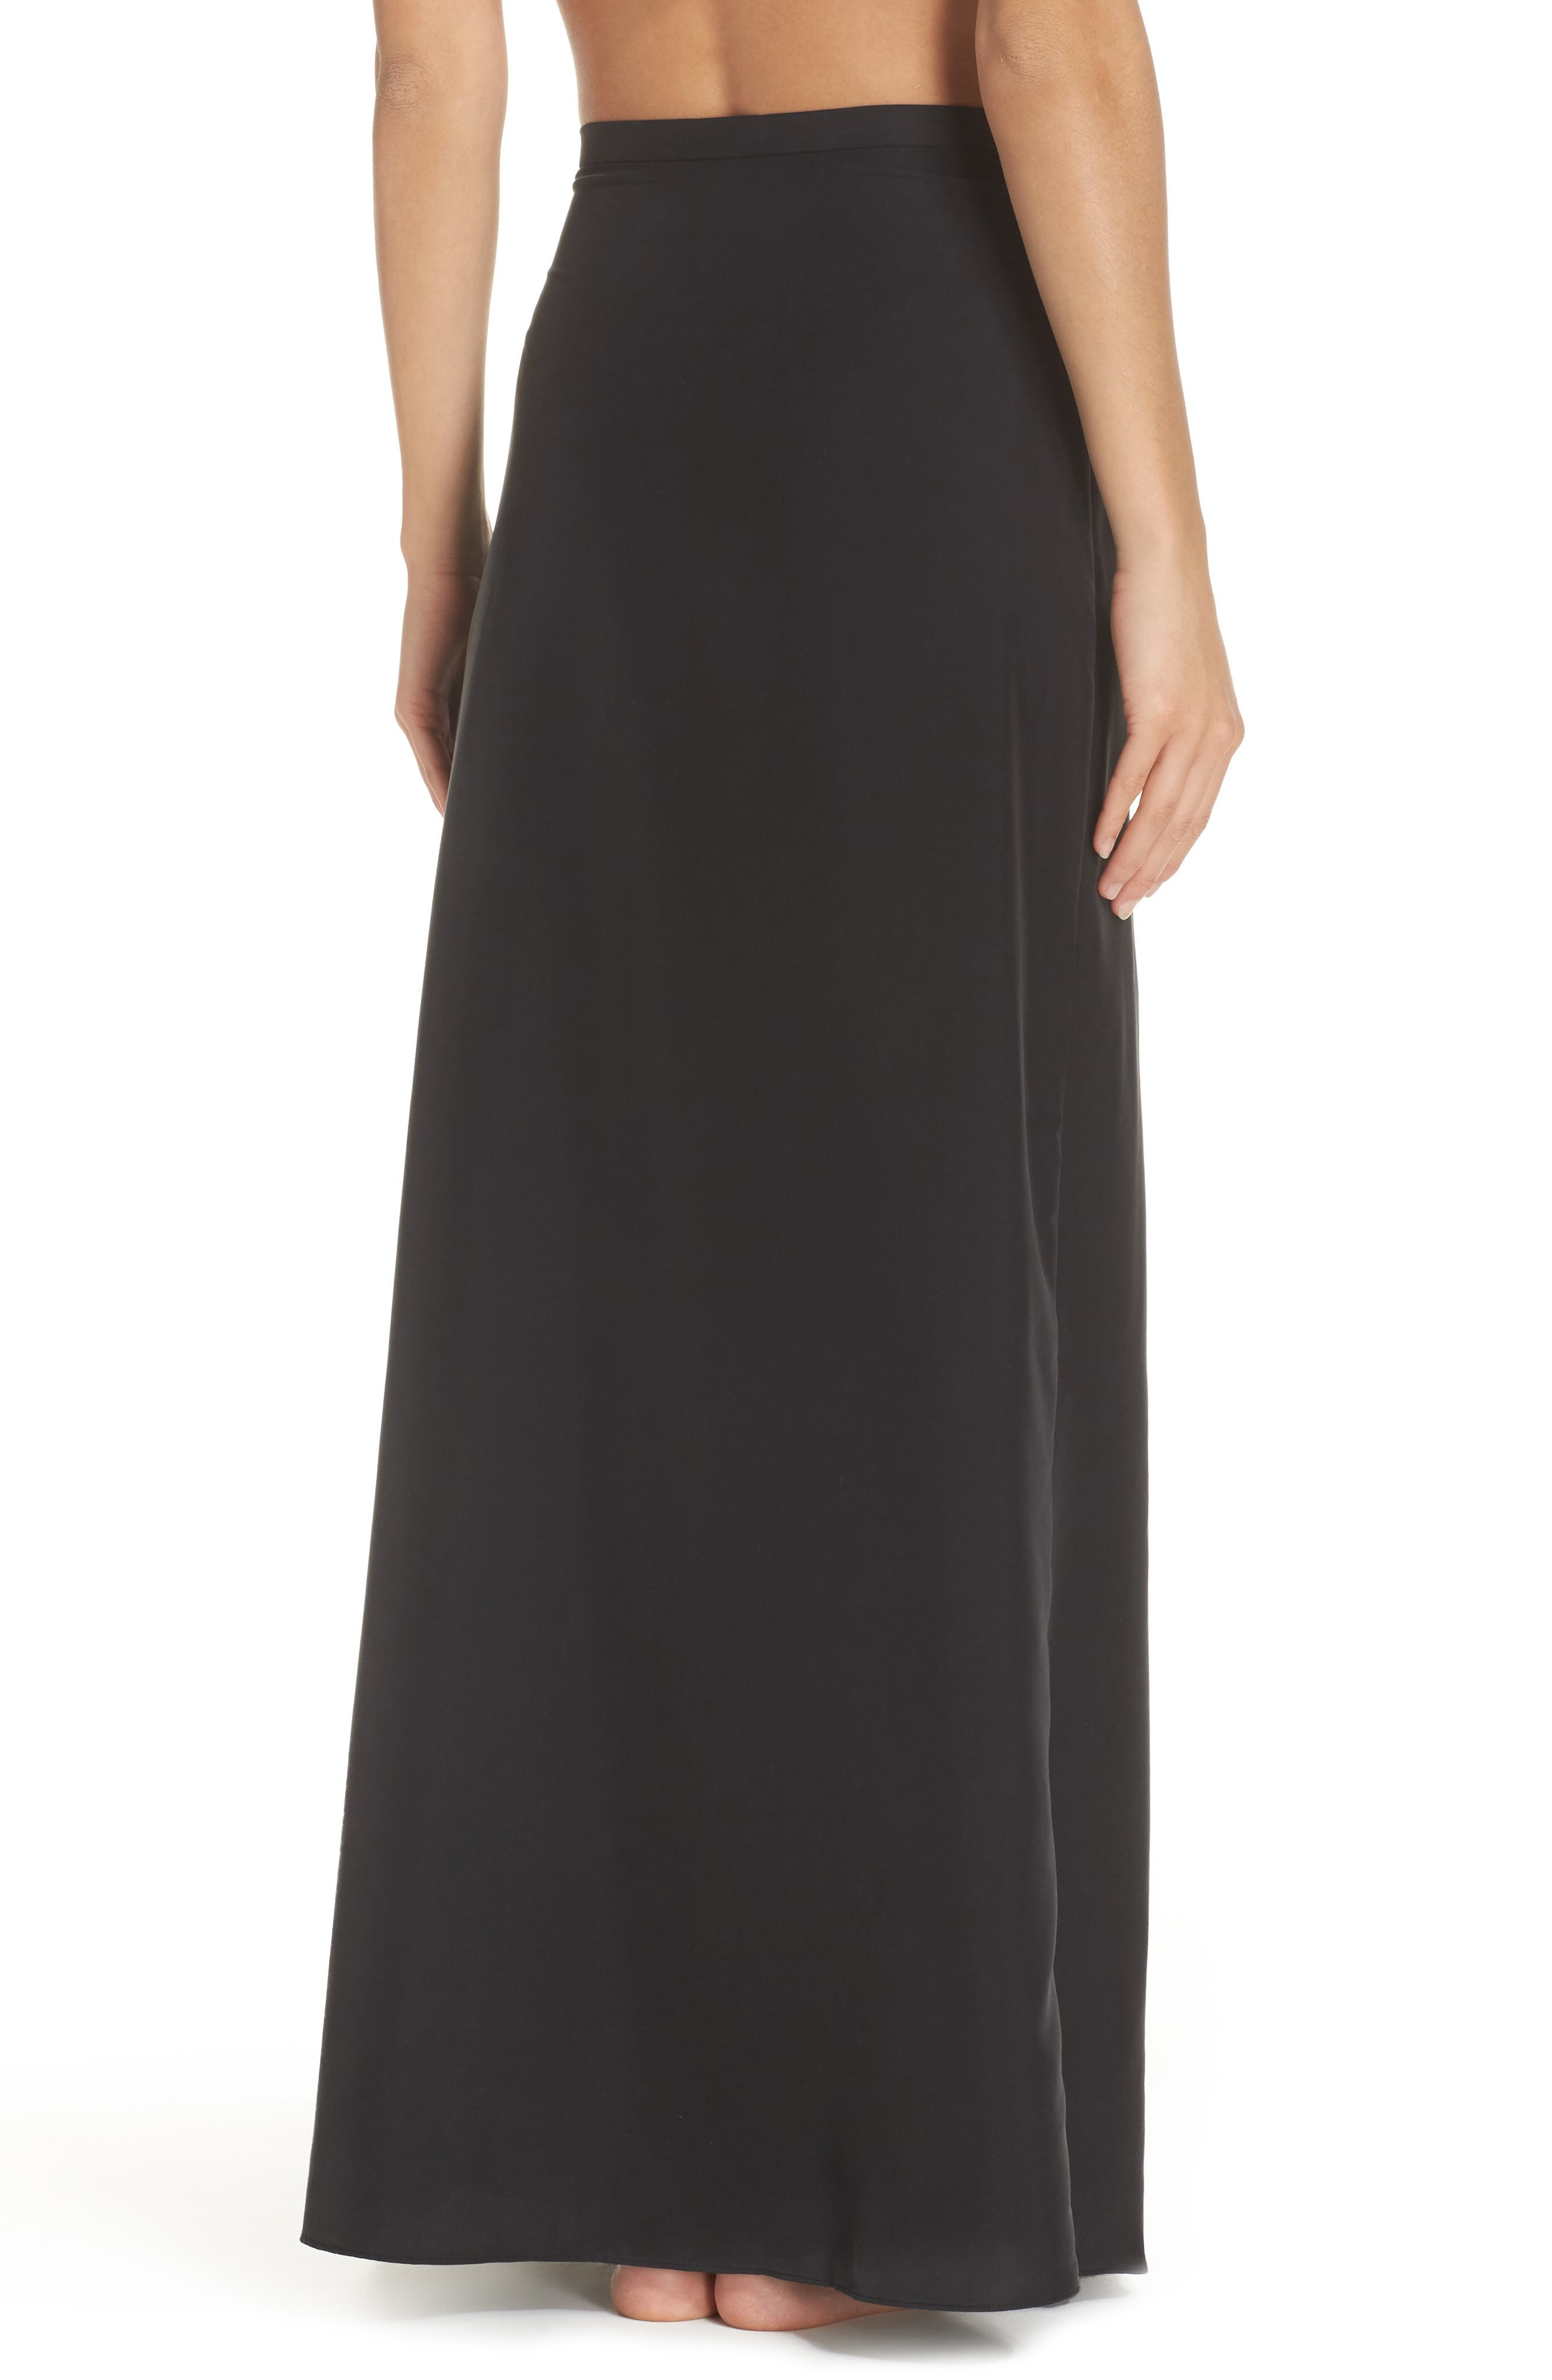 Lasting Impressions Cover-Up Maxi Skirt,                             Alternate thumbnail 2, color,                             001